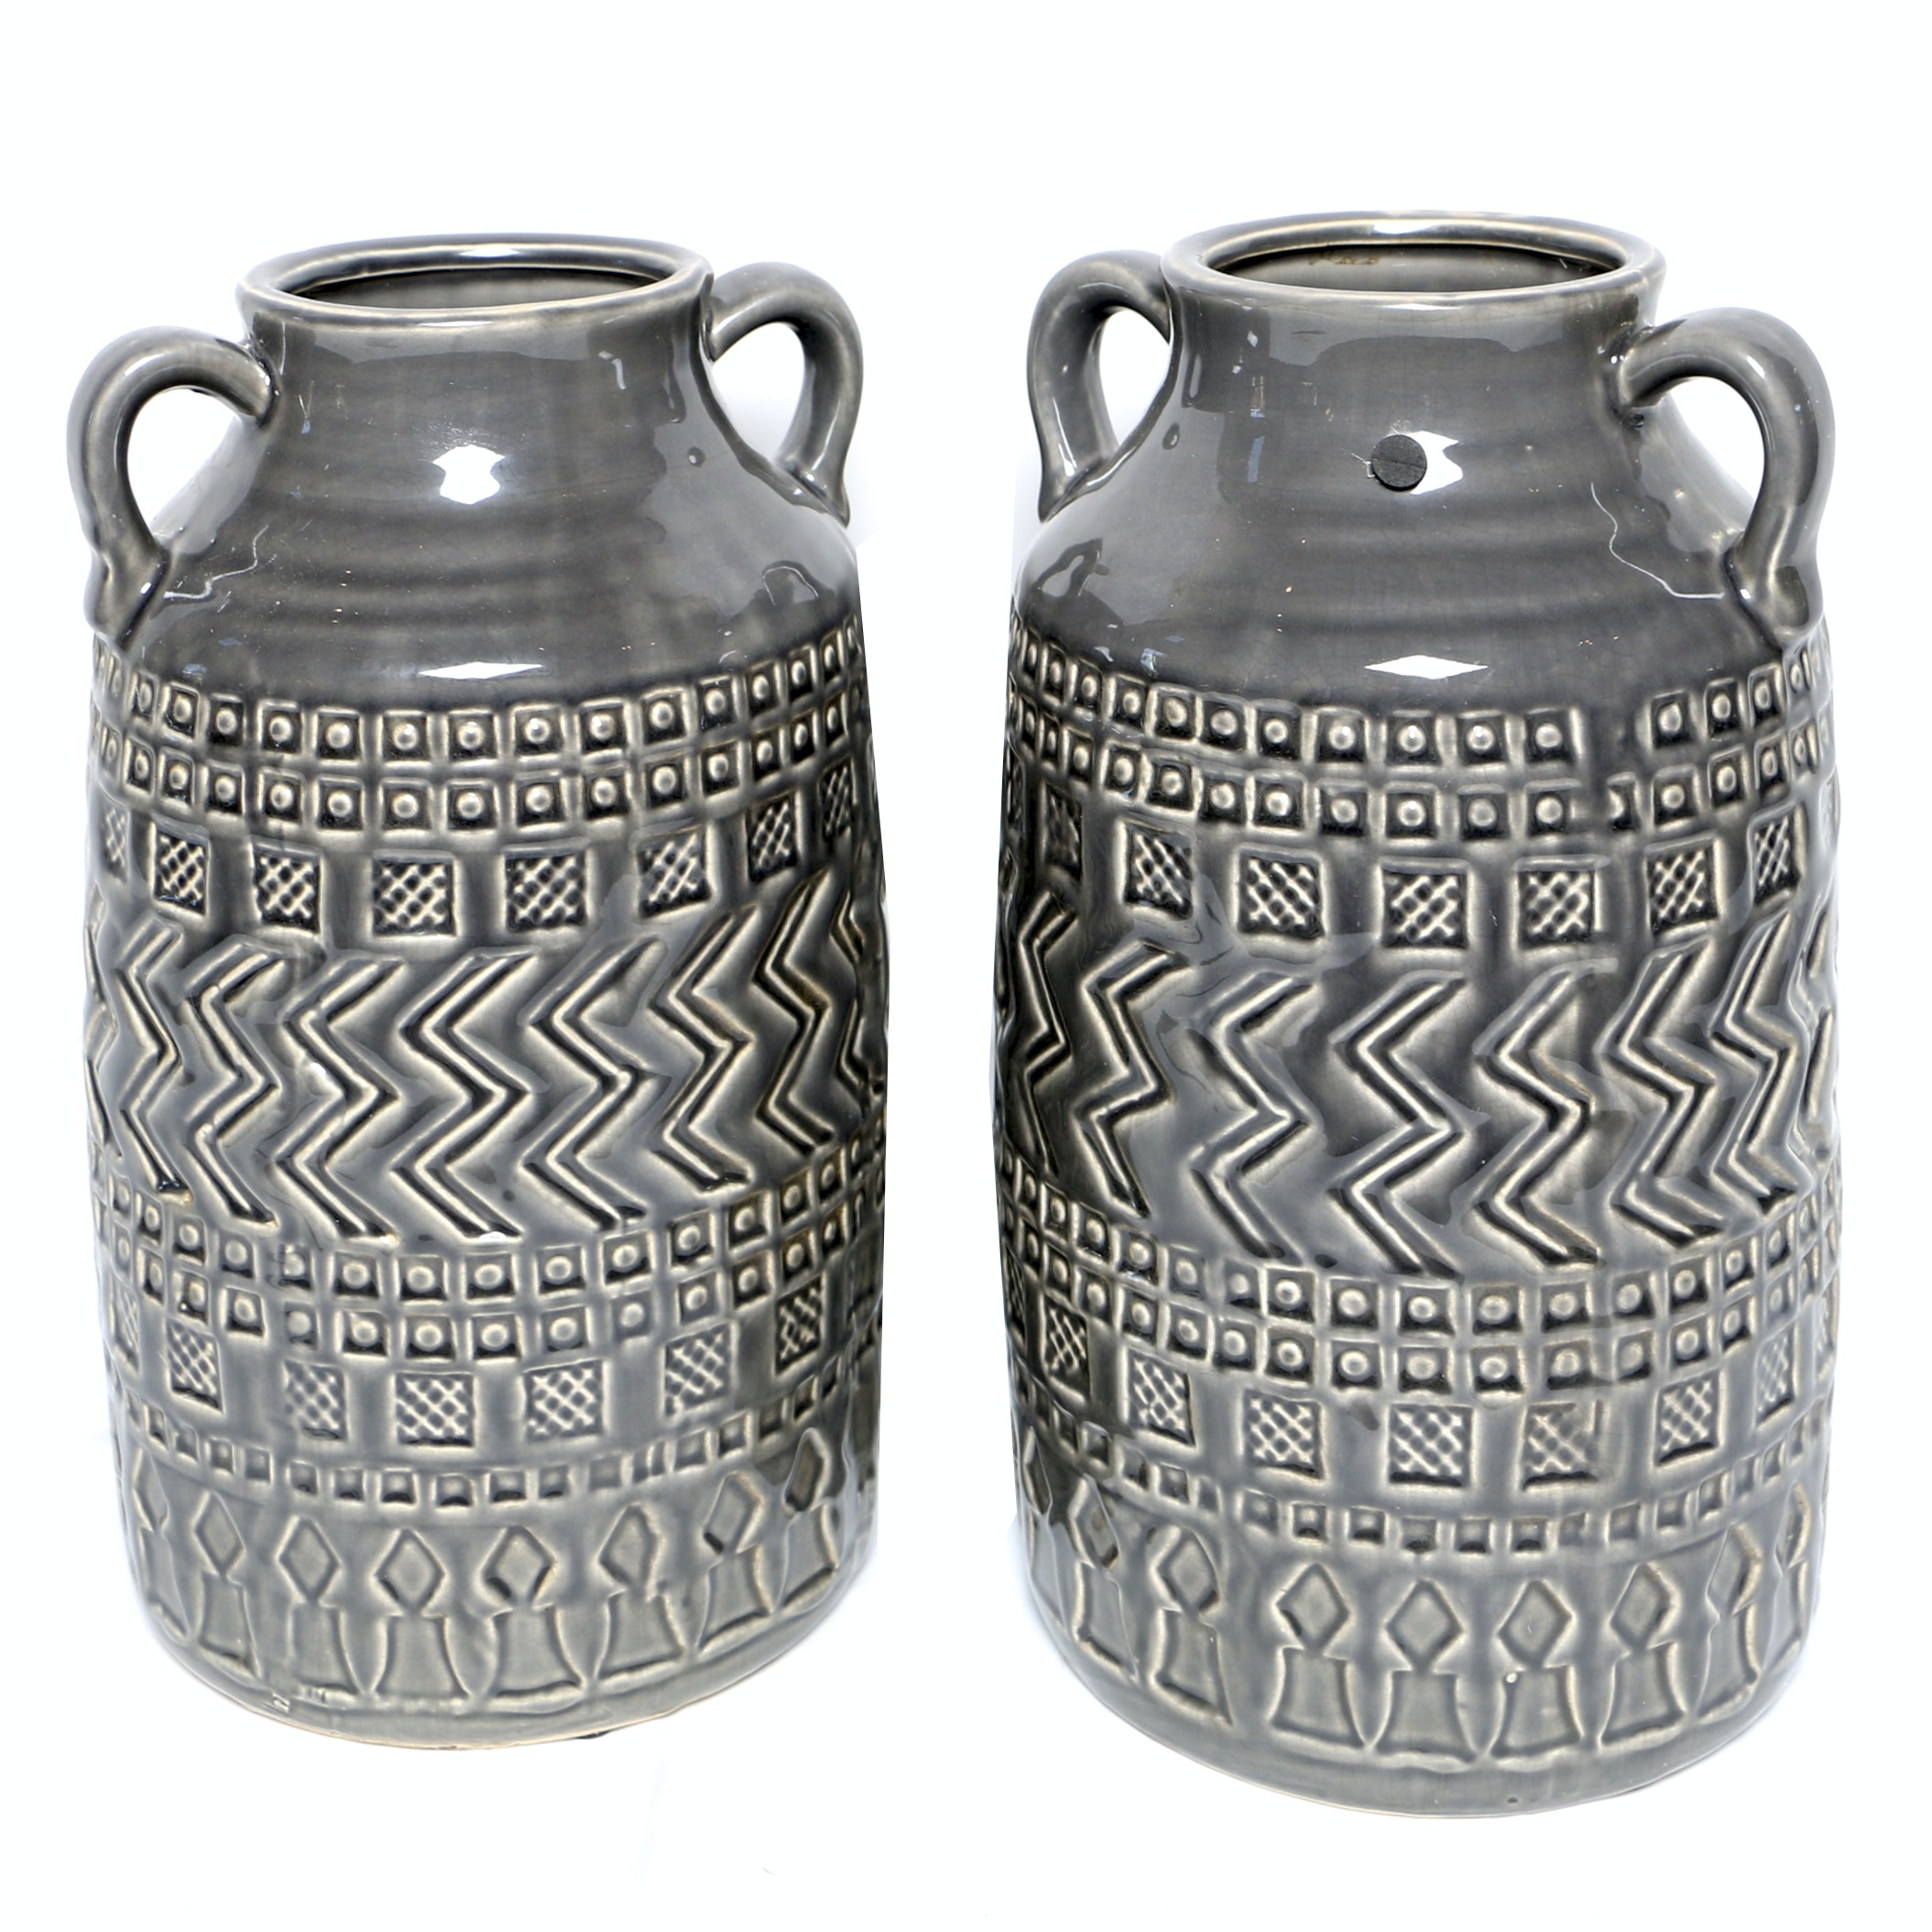 Incised Ceramic Vases